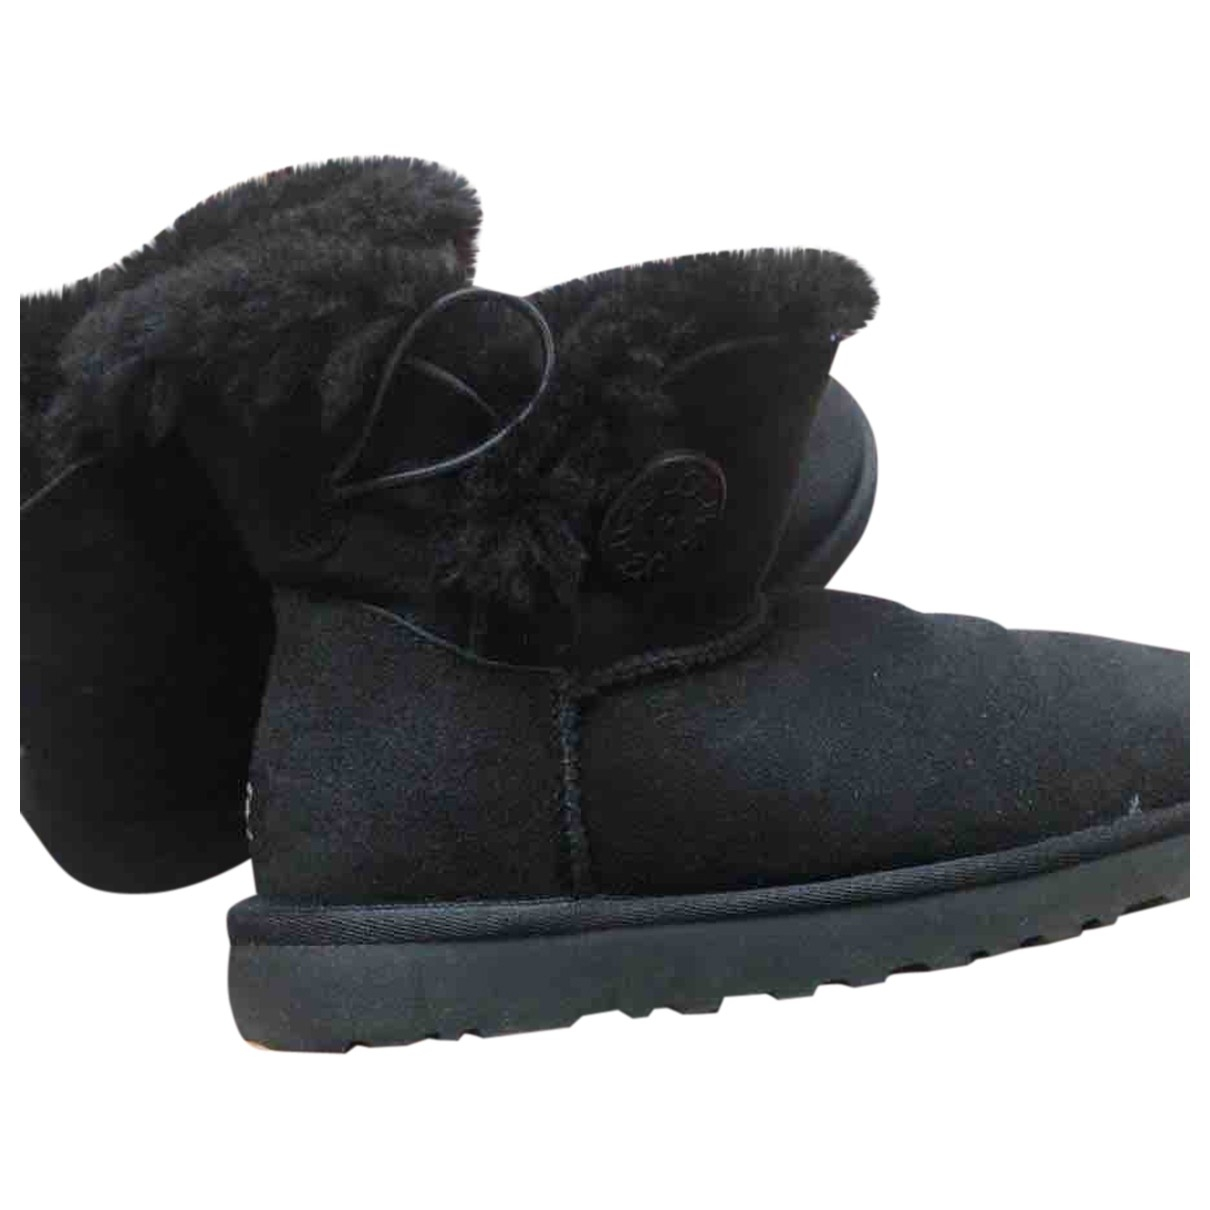 Ugg \N Black Suede Boots for Women 3.5 UK